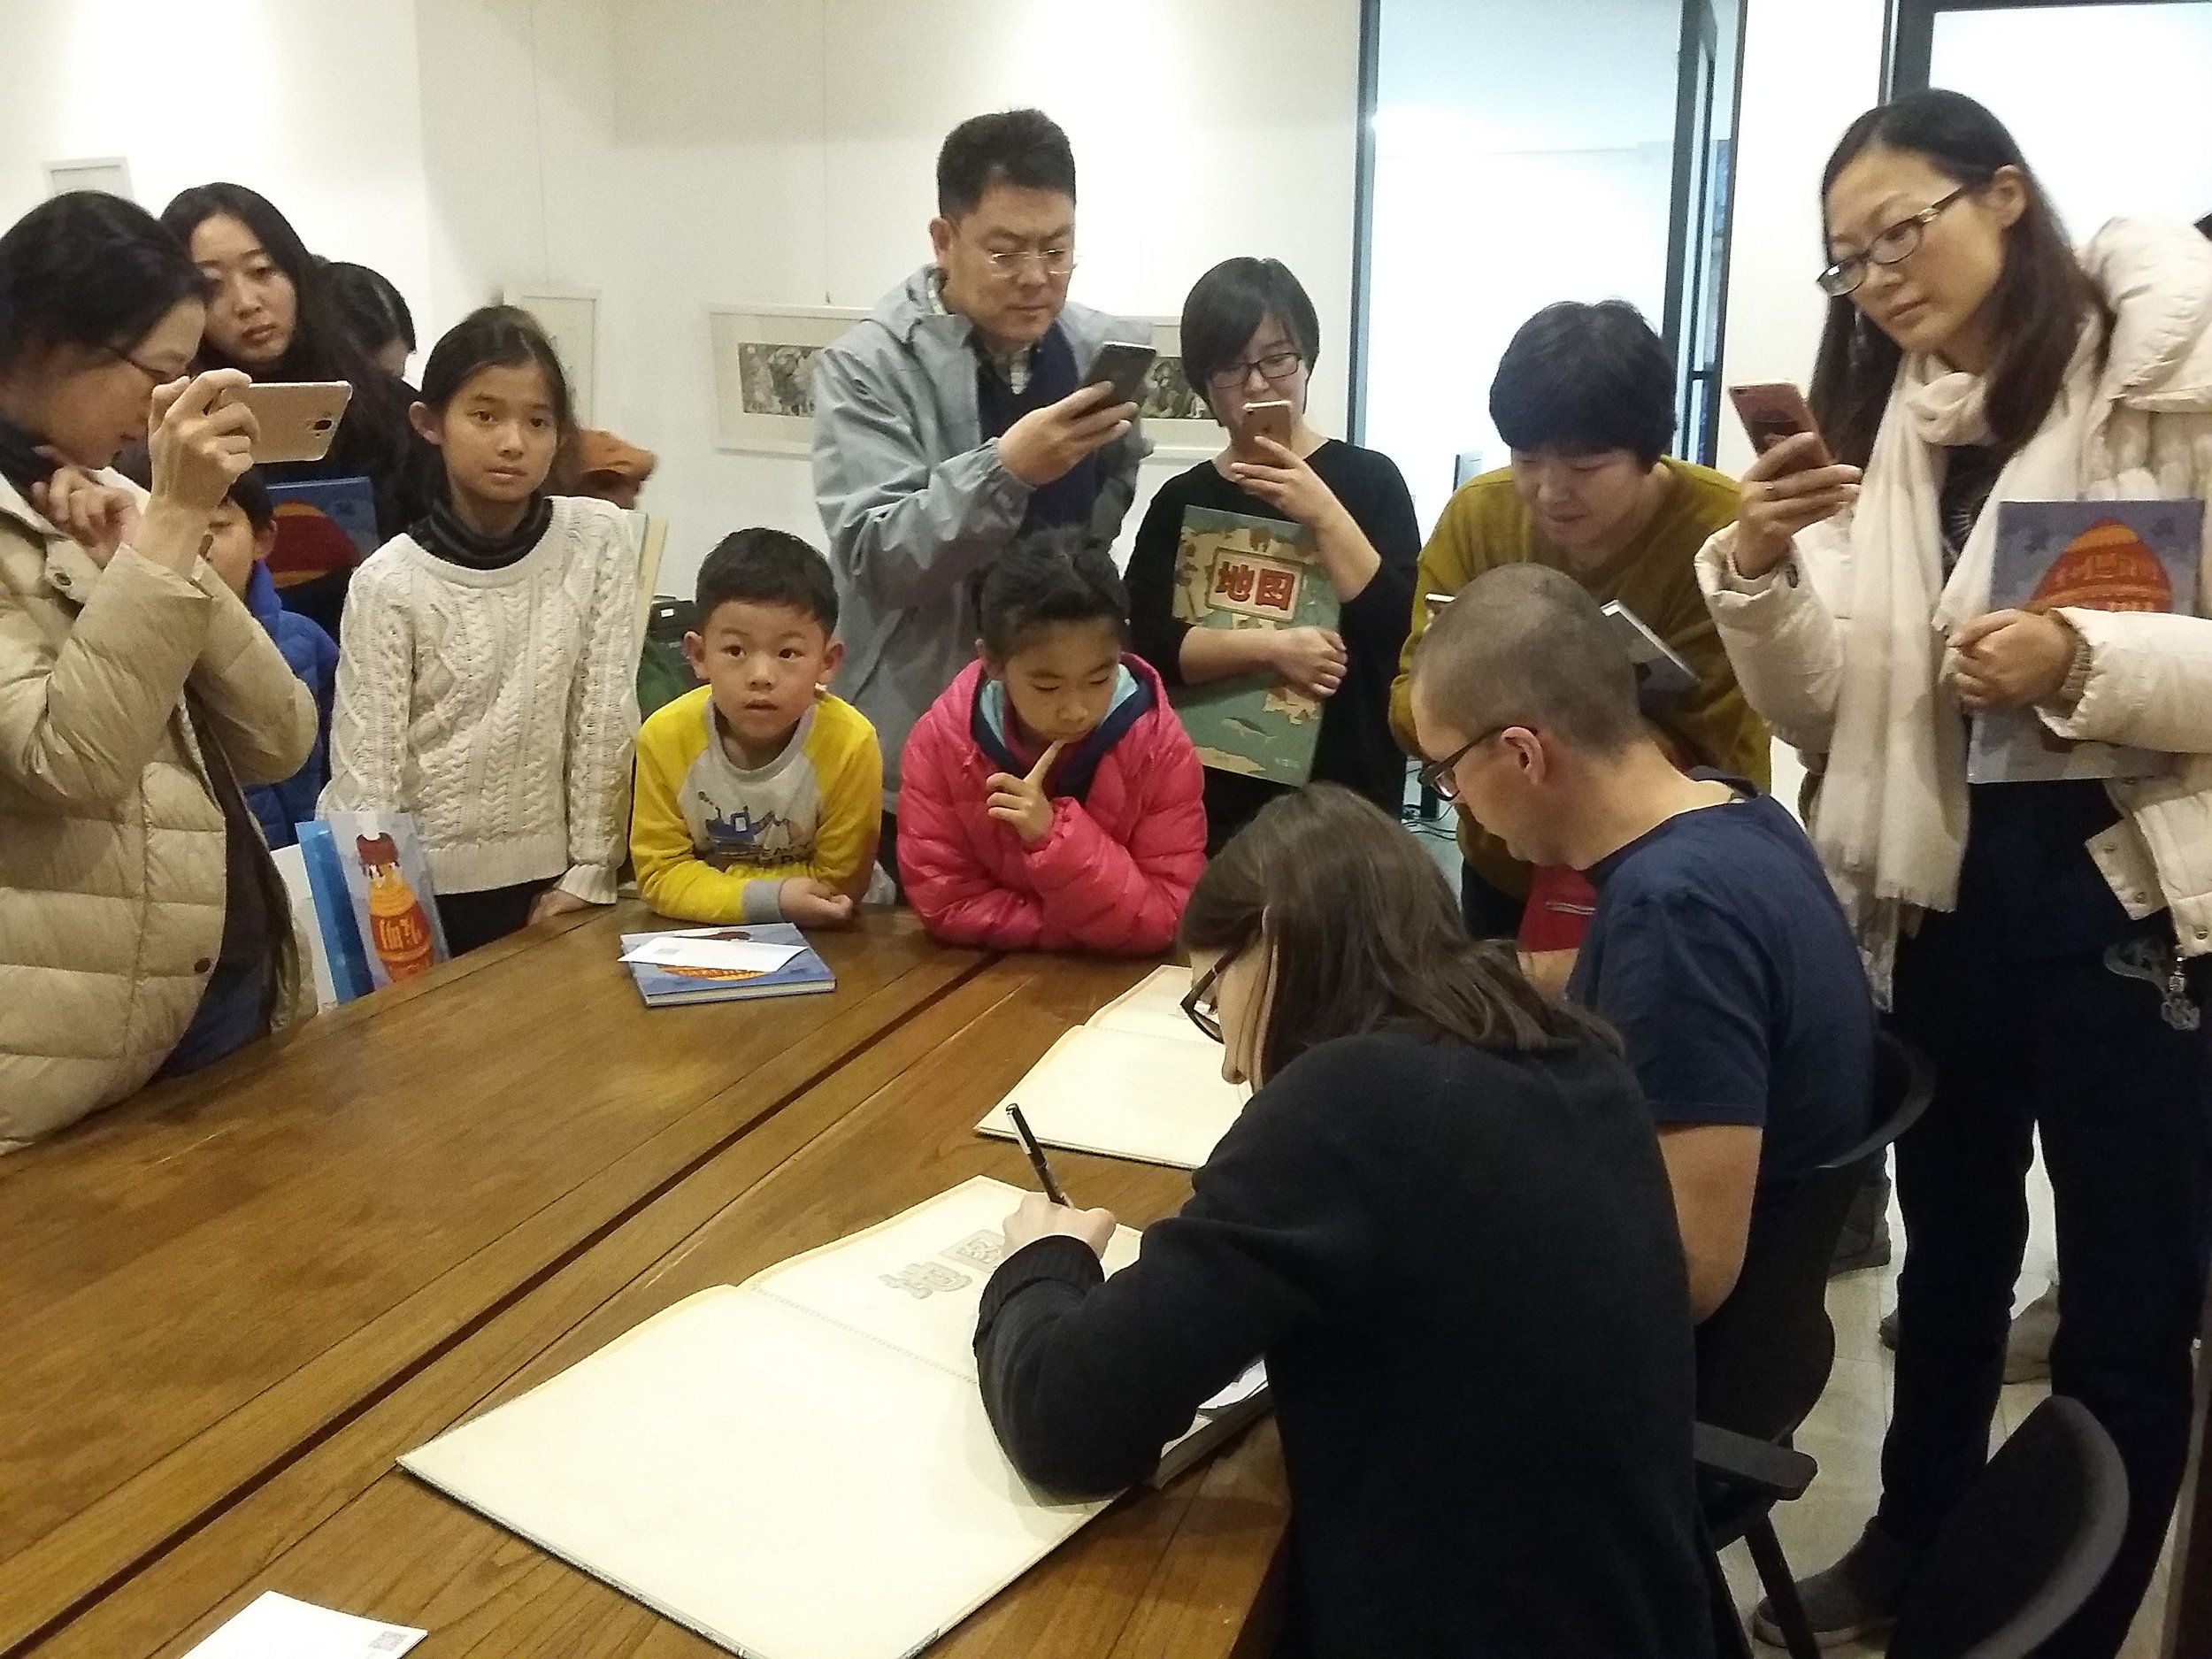 Book signing in our Chinese publisher's headquarters.